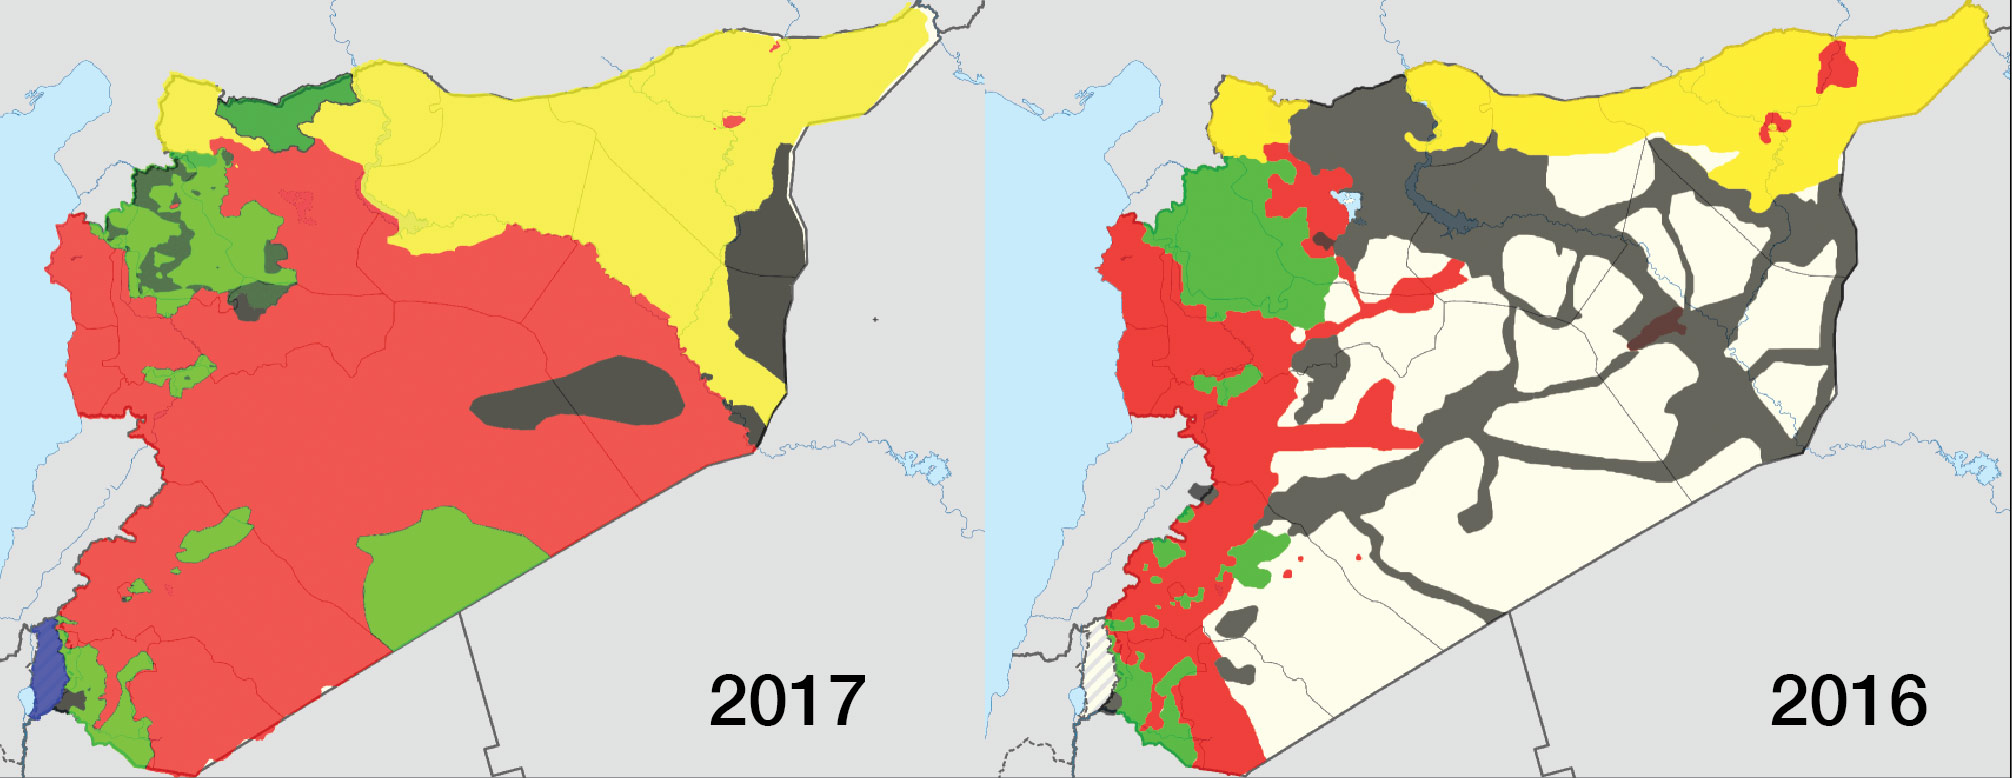 Map showing the change of military control in Syria between 2016 and 2017 (livemap)